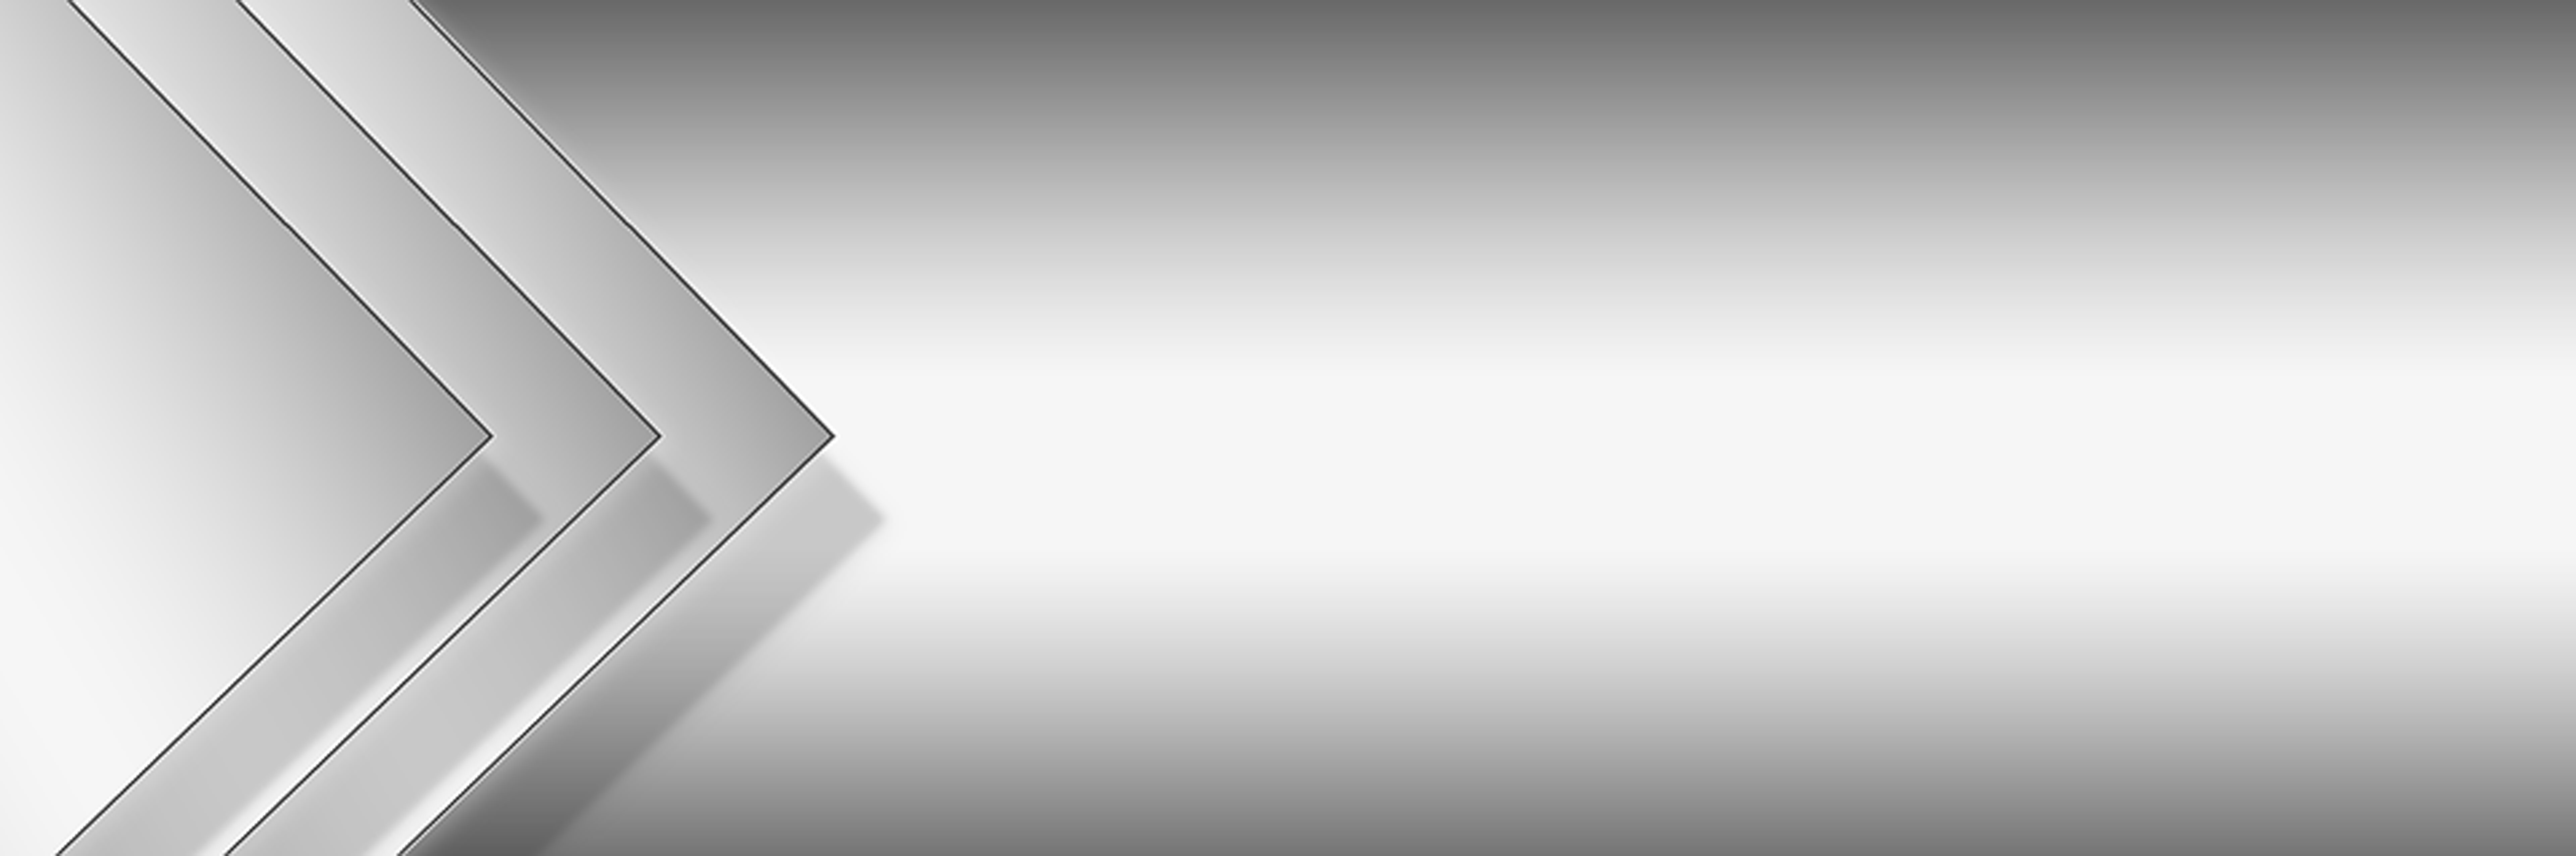 simple small fresh white banner background  mark  concept